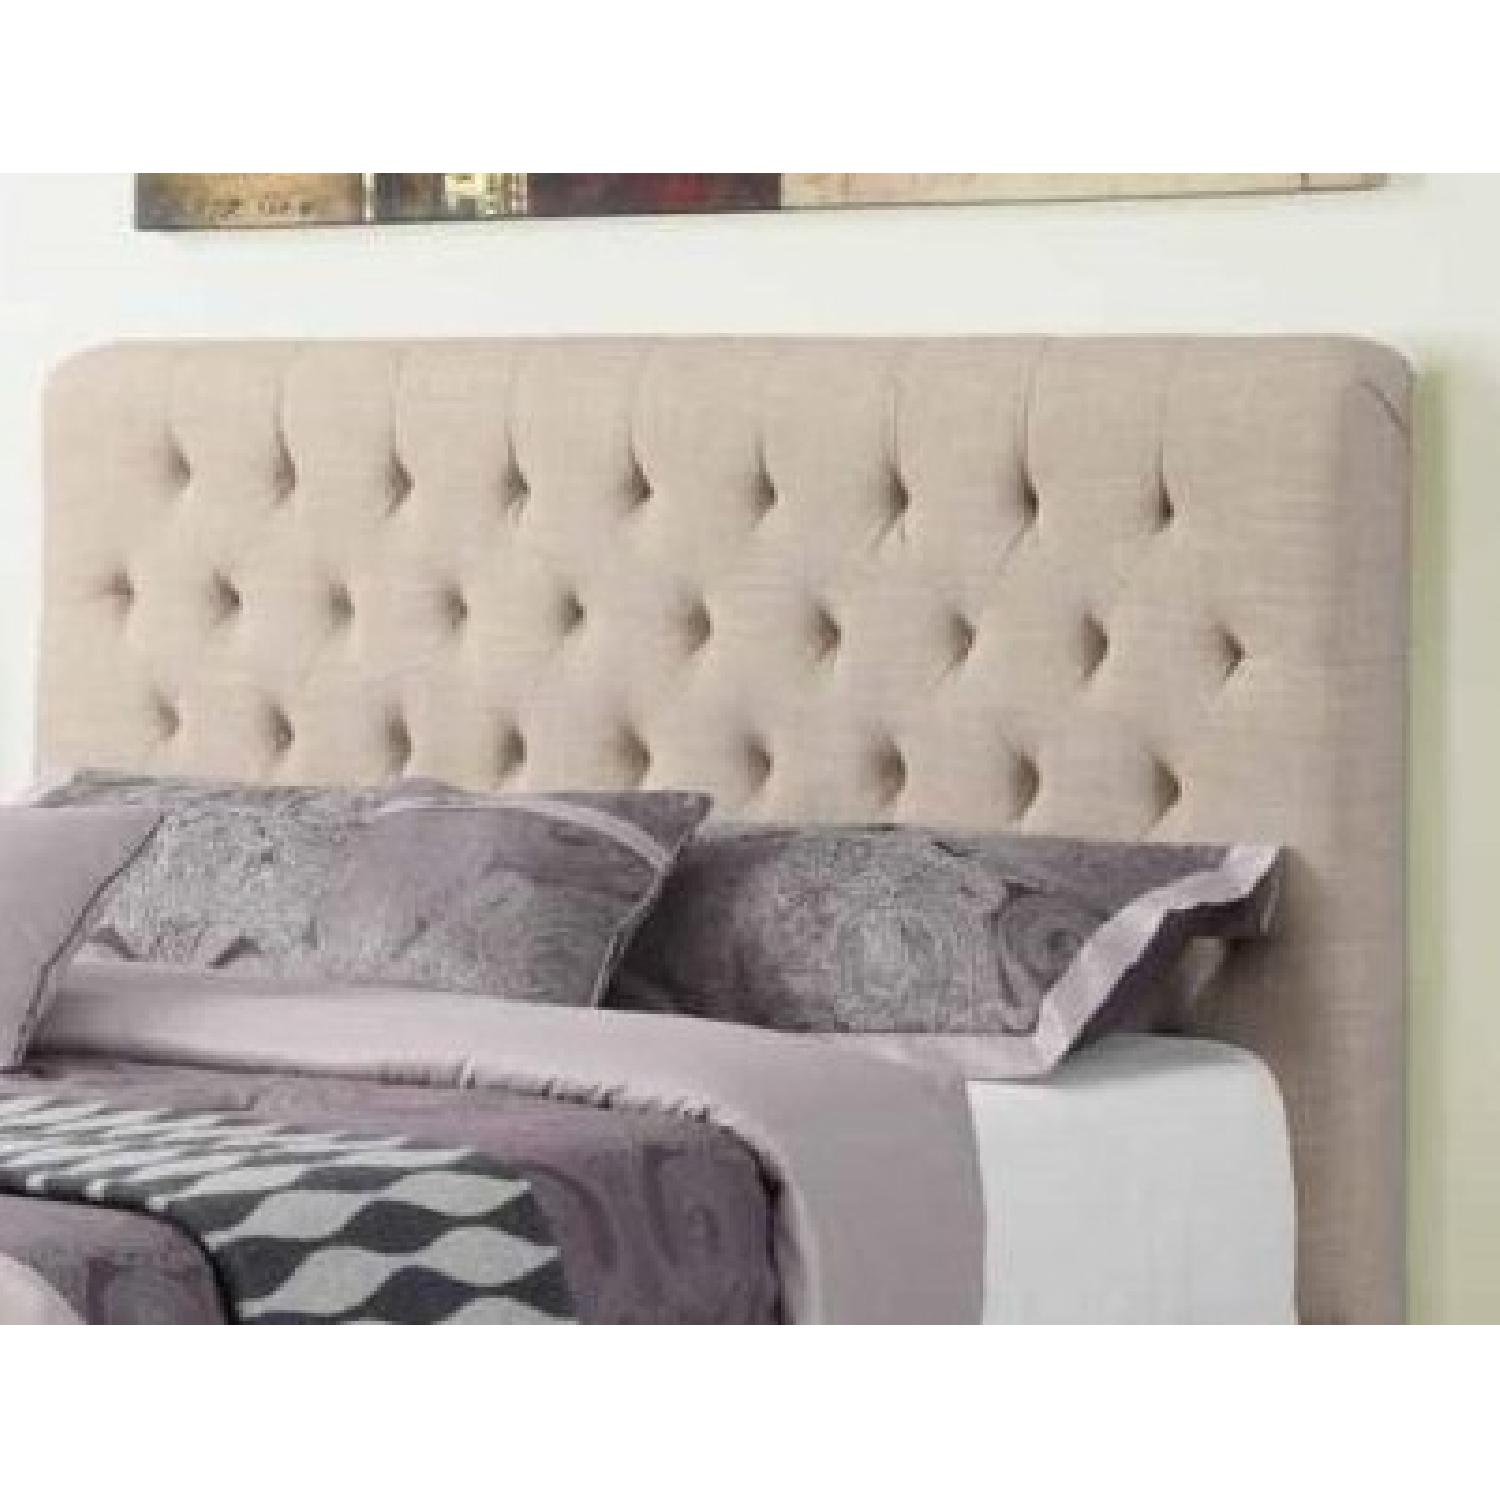 Modern Queen Fabric Upholstered Bed w/ Tufted Headboard in Oak Meal Fabric - image-2